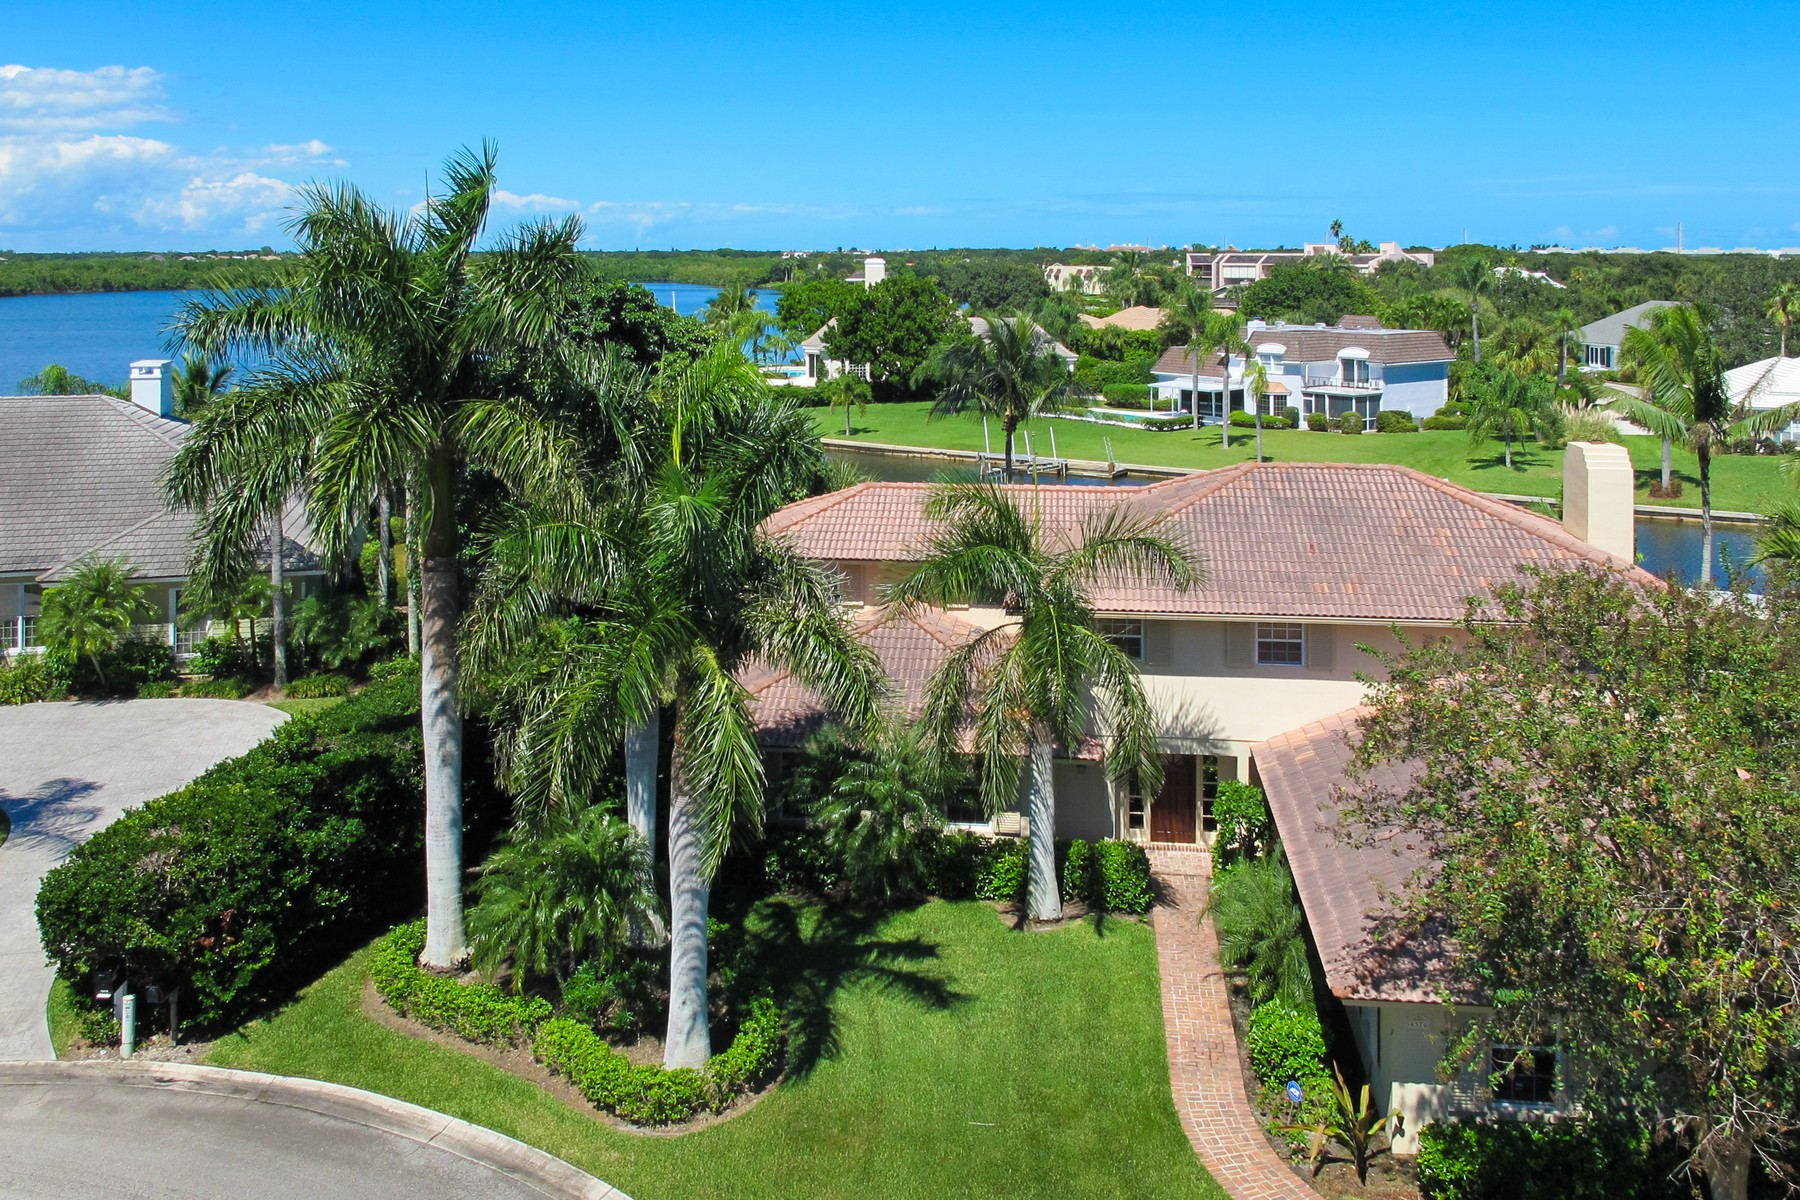 Eensgezinswoning voor Verkoop op Extraordinary Riverfront Estate 4576 Pebble Bay S Indian River Shores, Florida 32963 Verenigde Staten